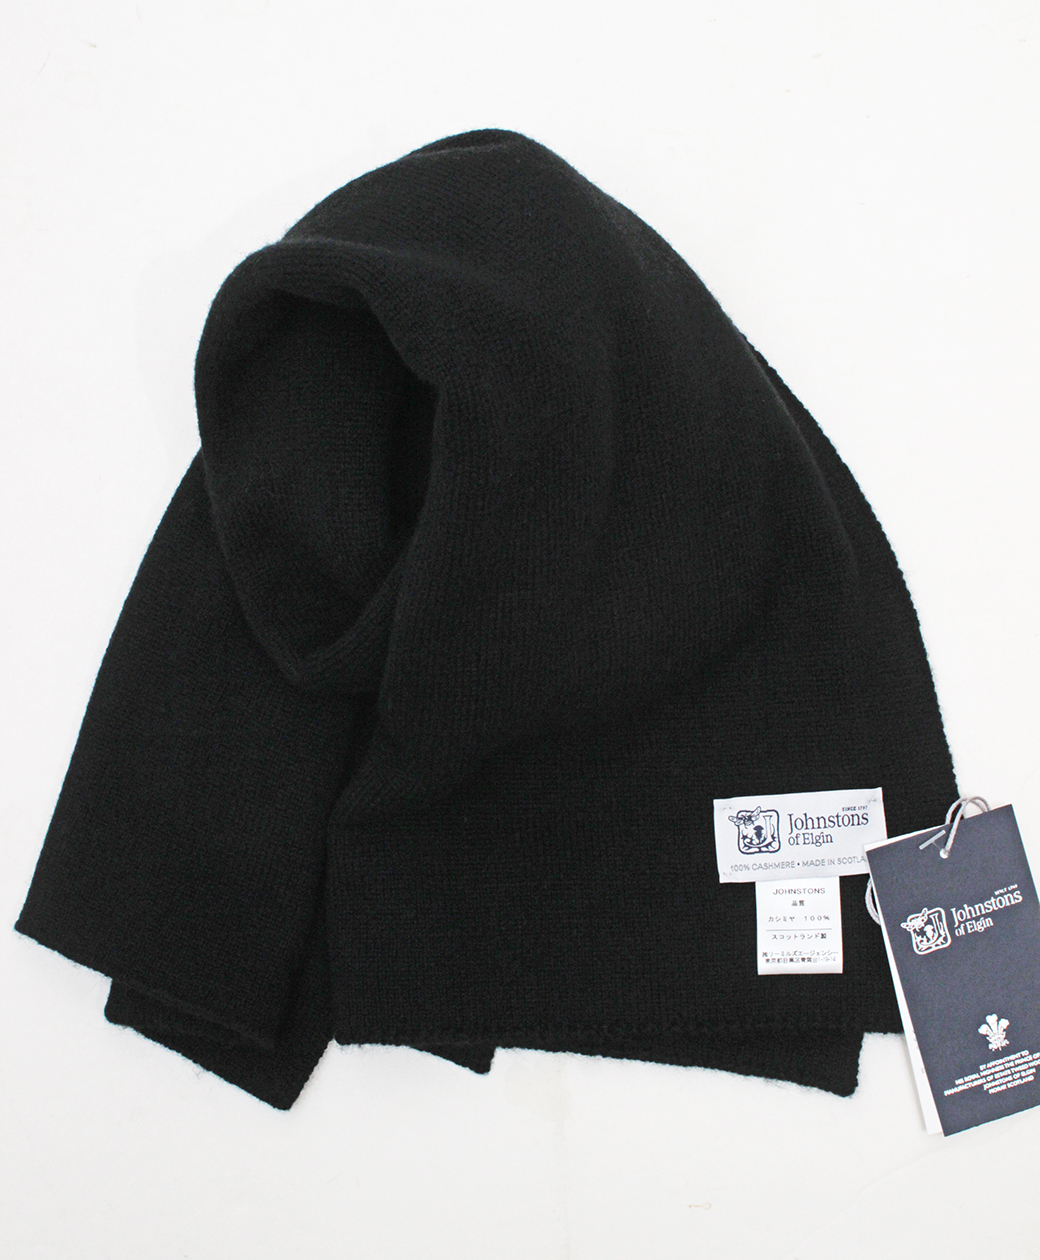 Johnstons of Elgin ※1月24日(日)まで!! 2020AW COLLECTION SALE !! Short SCARF(Black)